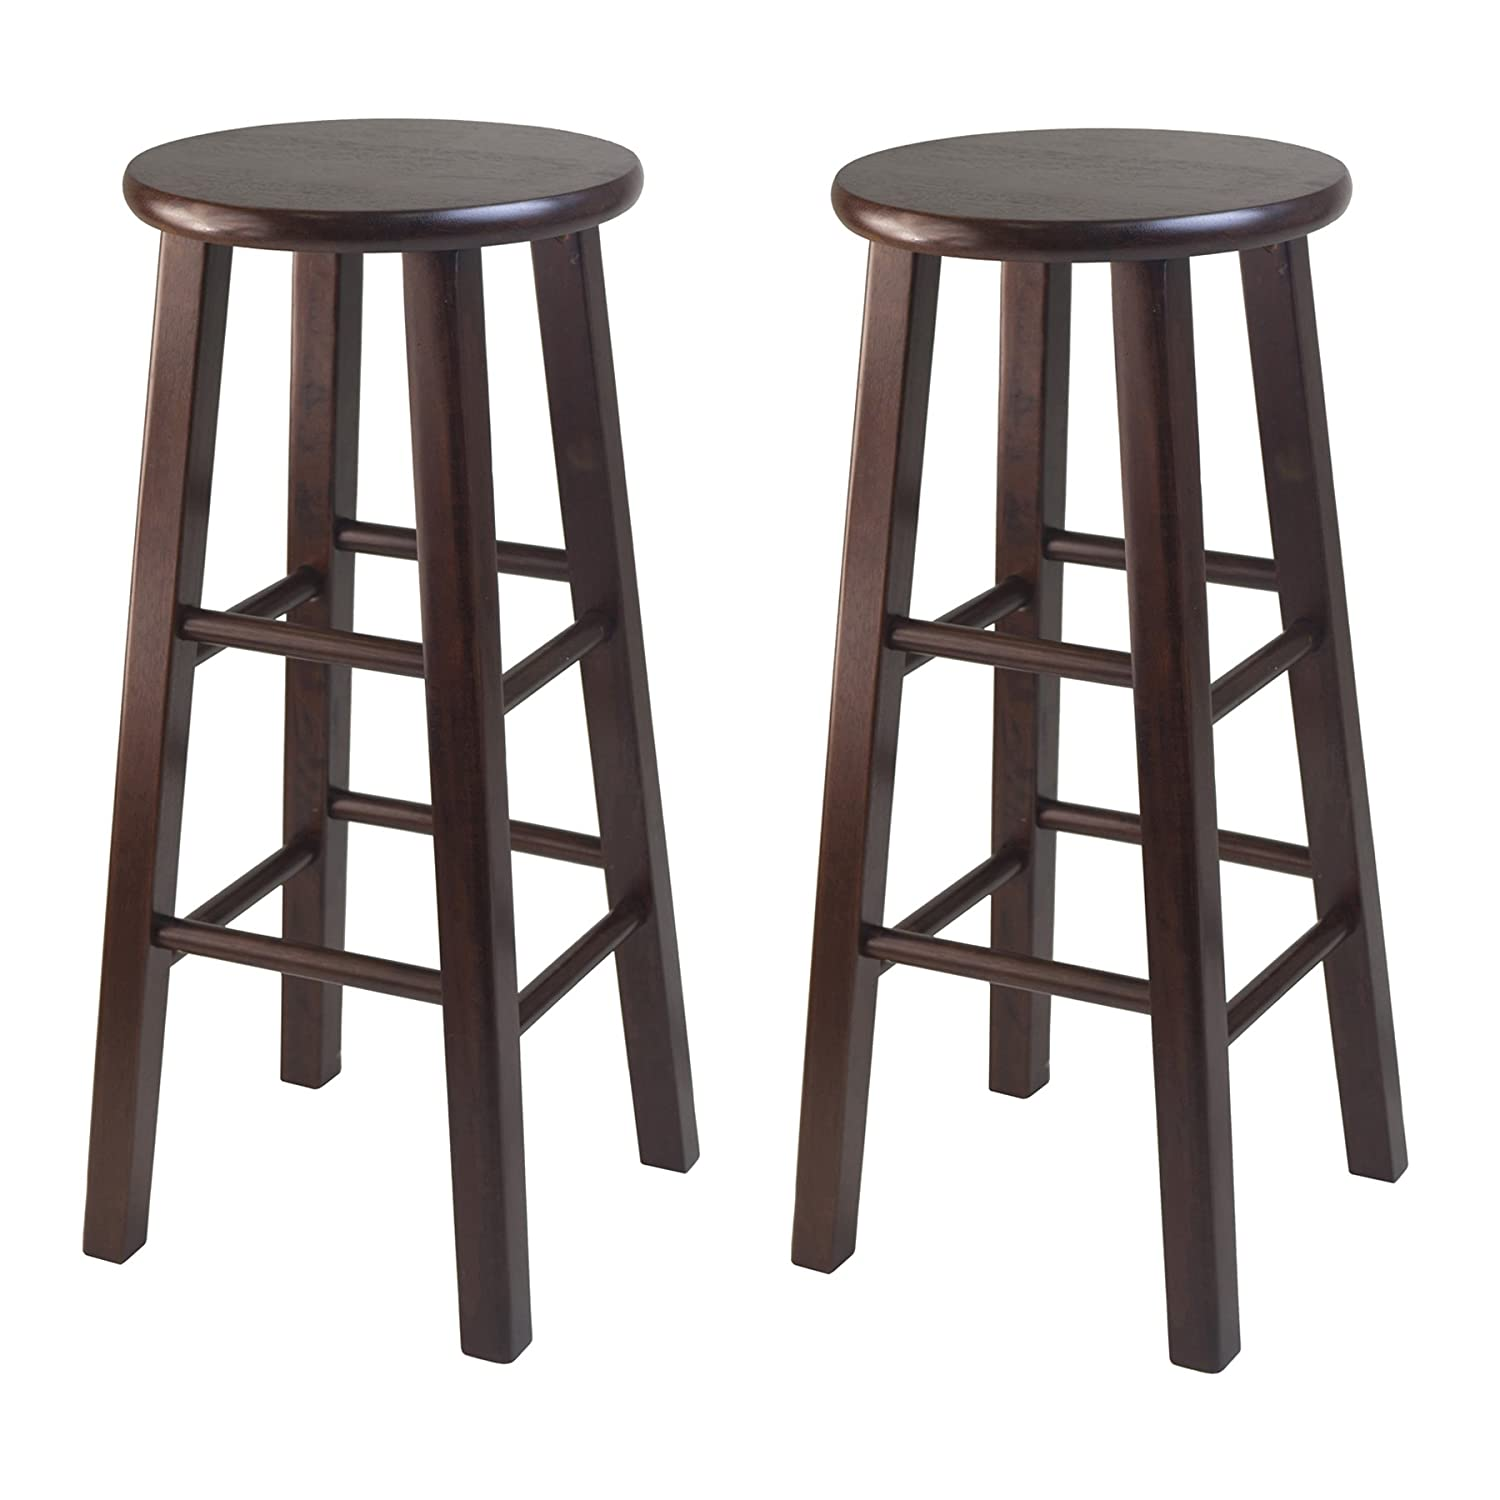 Amazoncom Winsome 29Inch Square Leg Bar Stool Black Set of 2